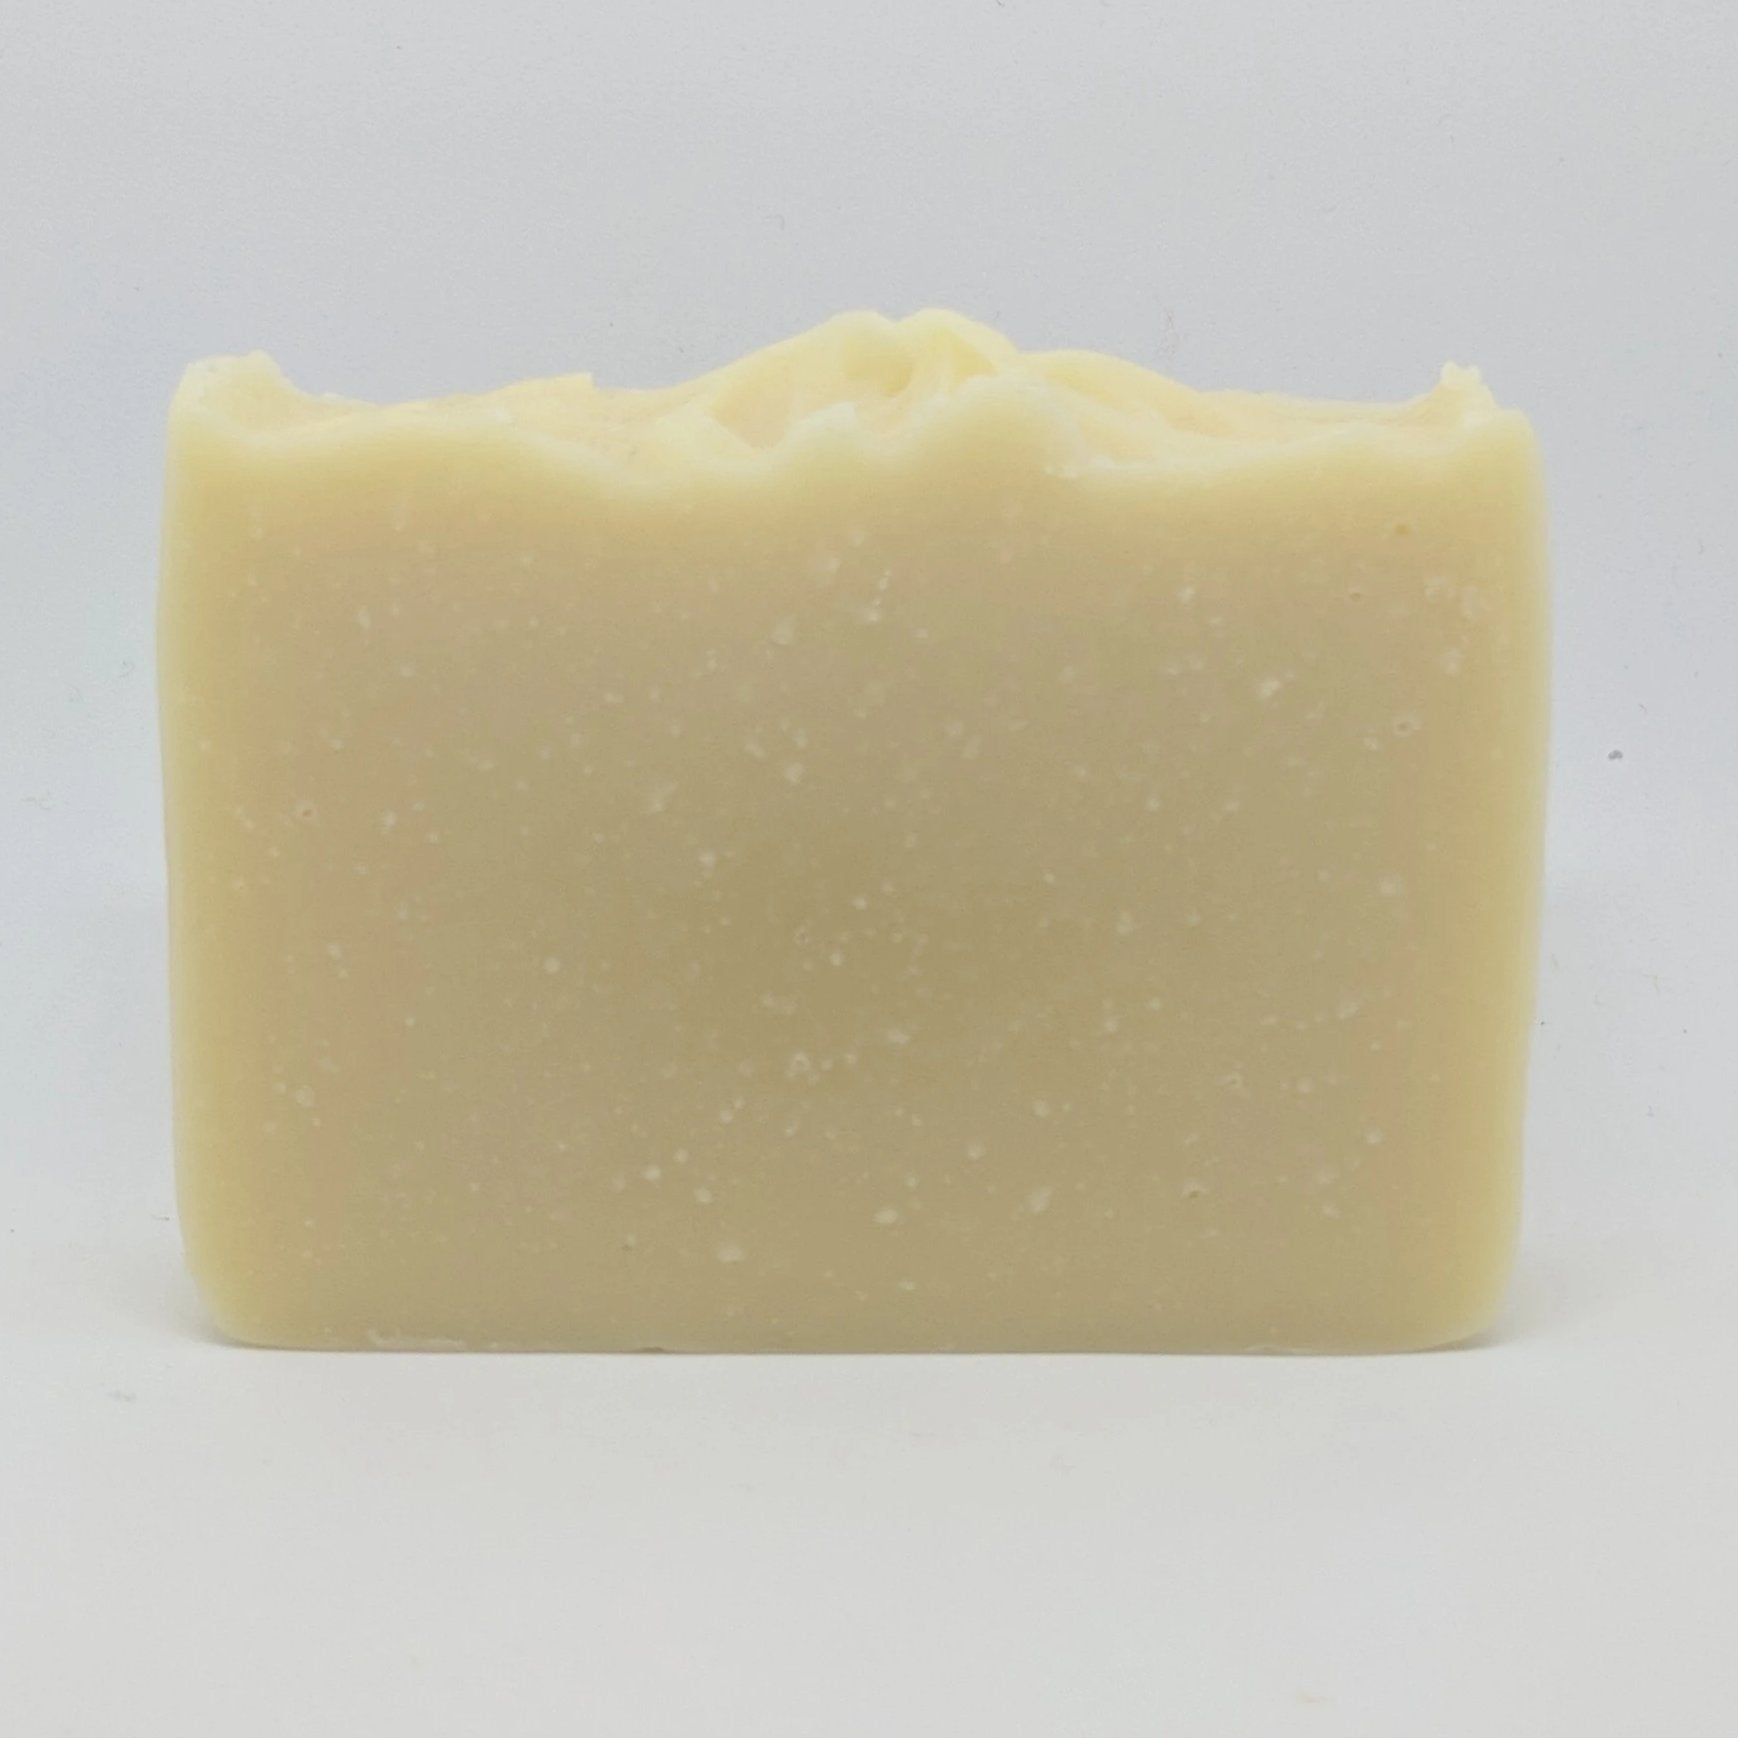 Hand Crafted Soap - Just Soap